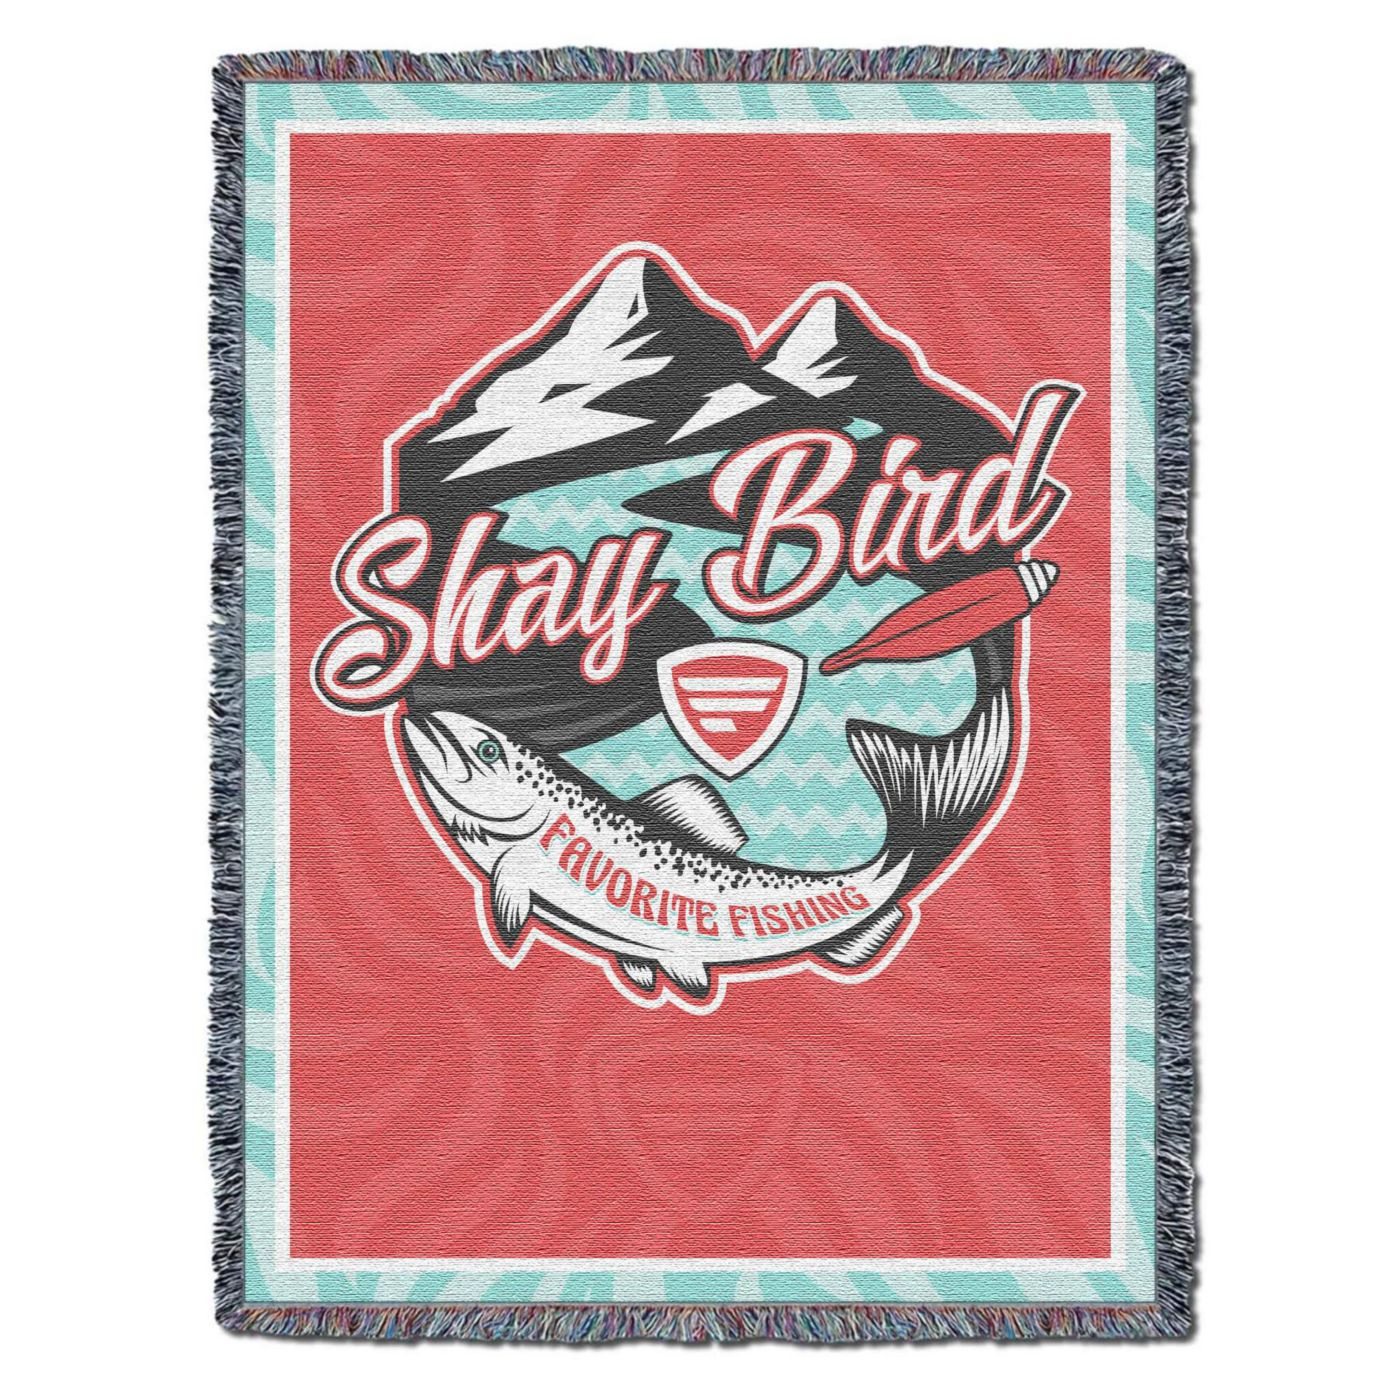 Favorite Fishing Shay Bird Blanket